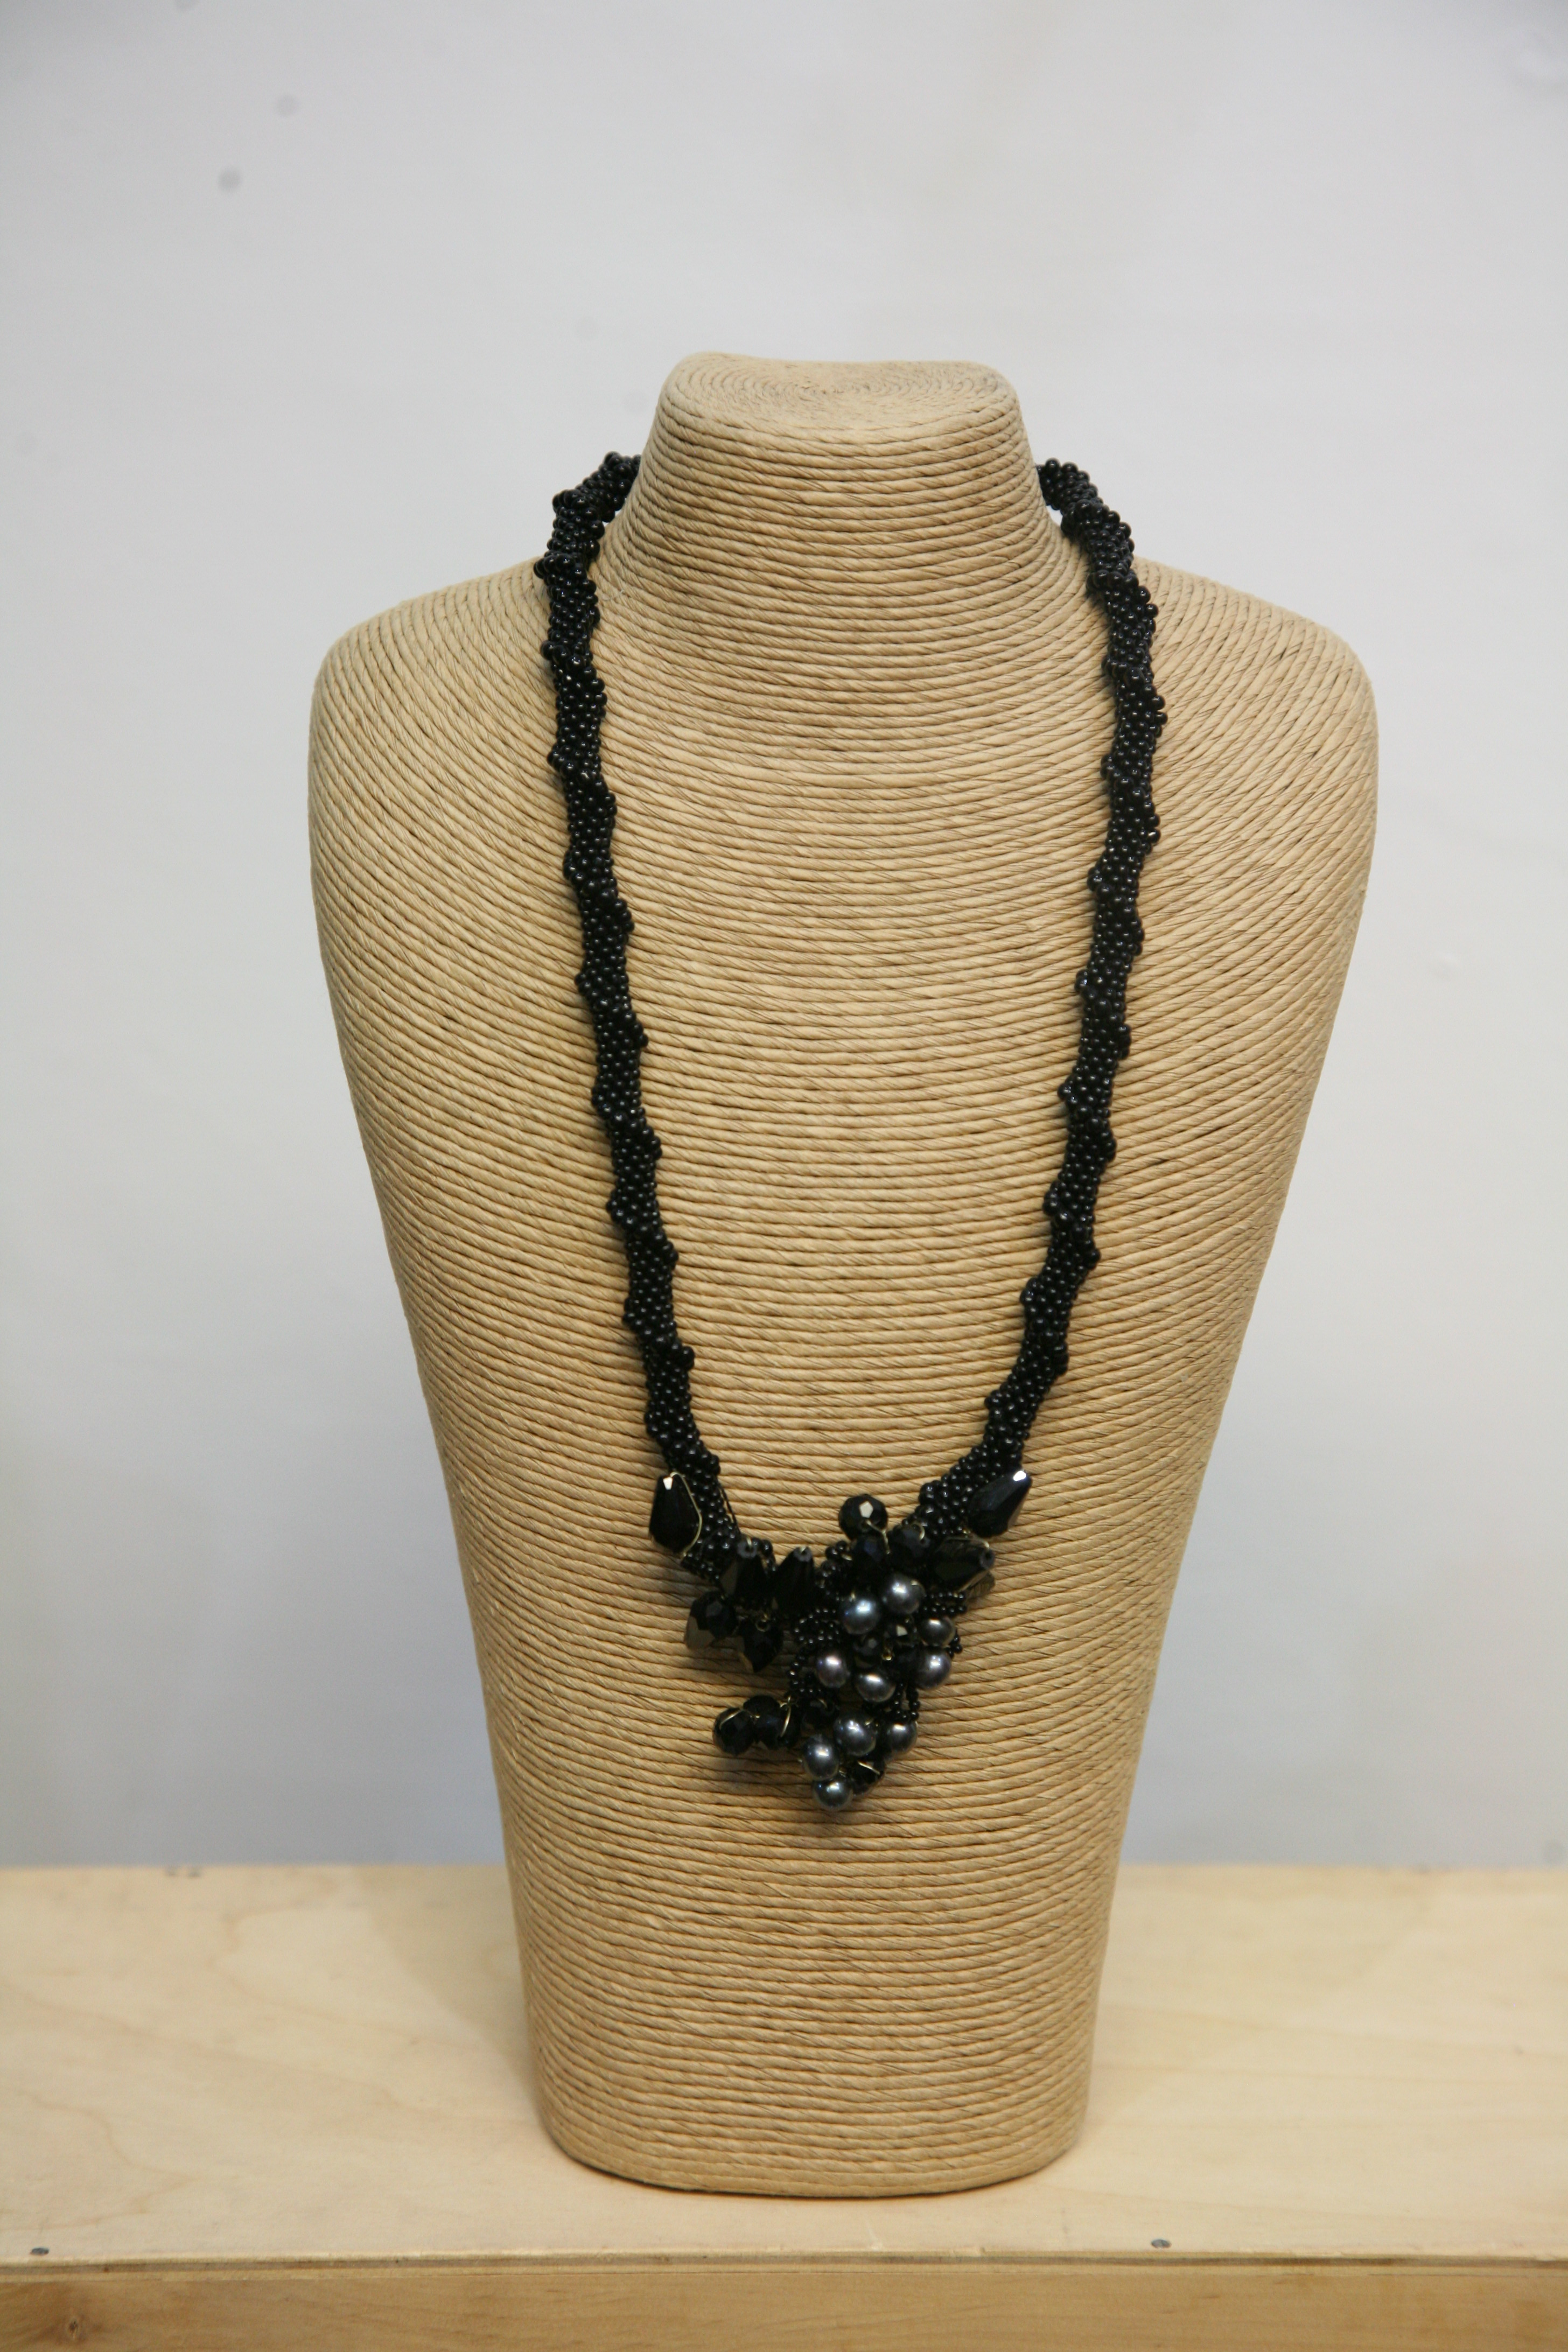 Black Beaded Necklace by Traid Nepal